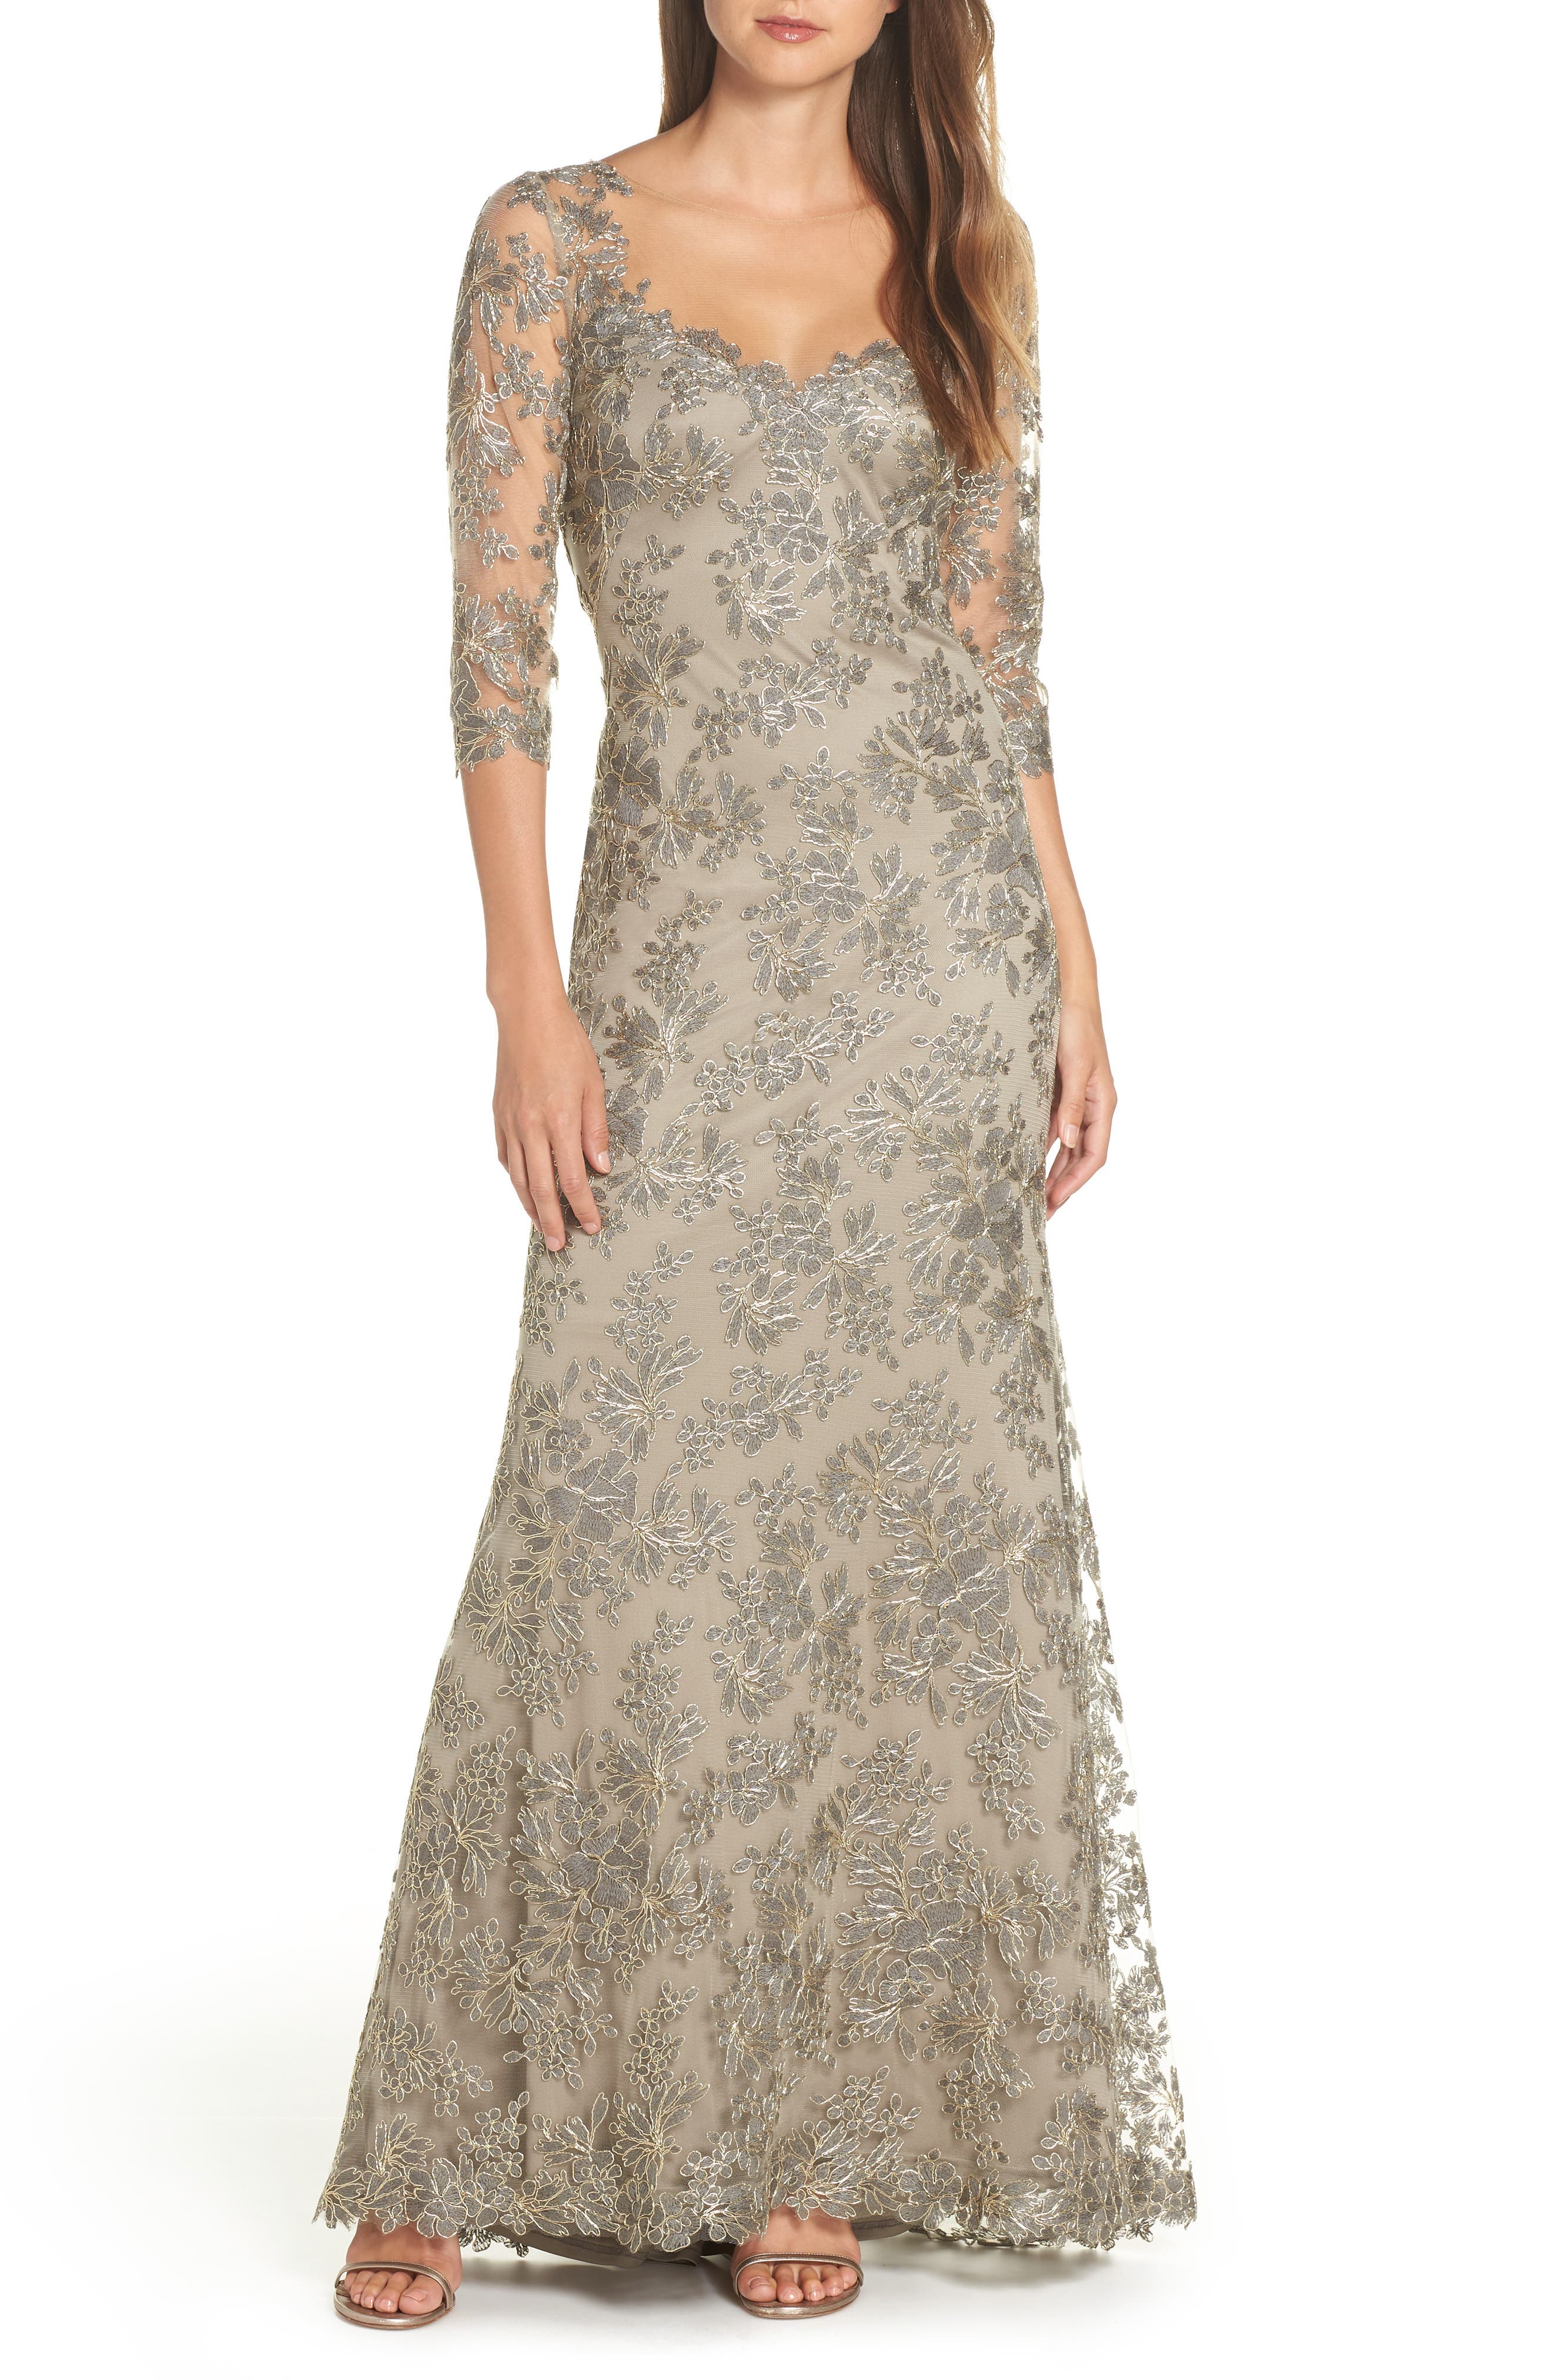 TADASHI SHOJI, Corded Embroidered Lace Gown, Main thumbnail 1, color, SMOKE PEARL